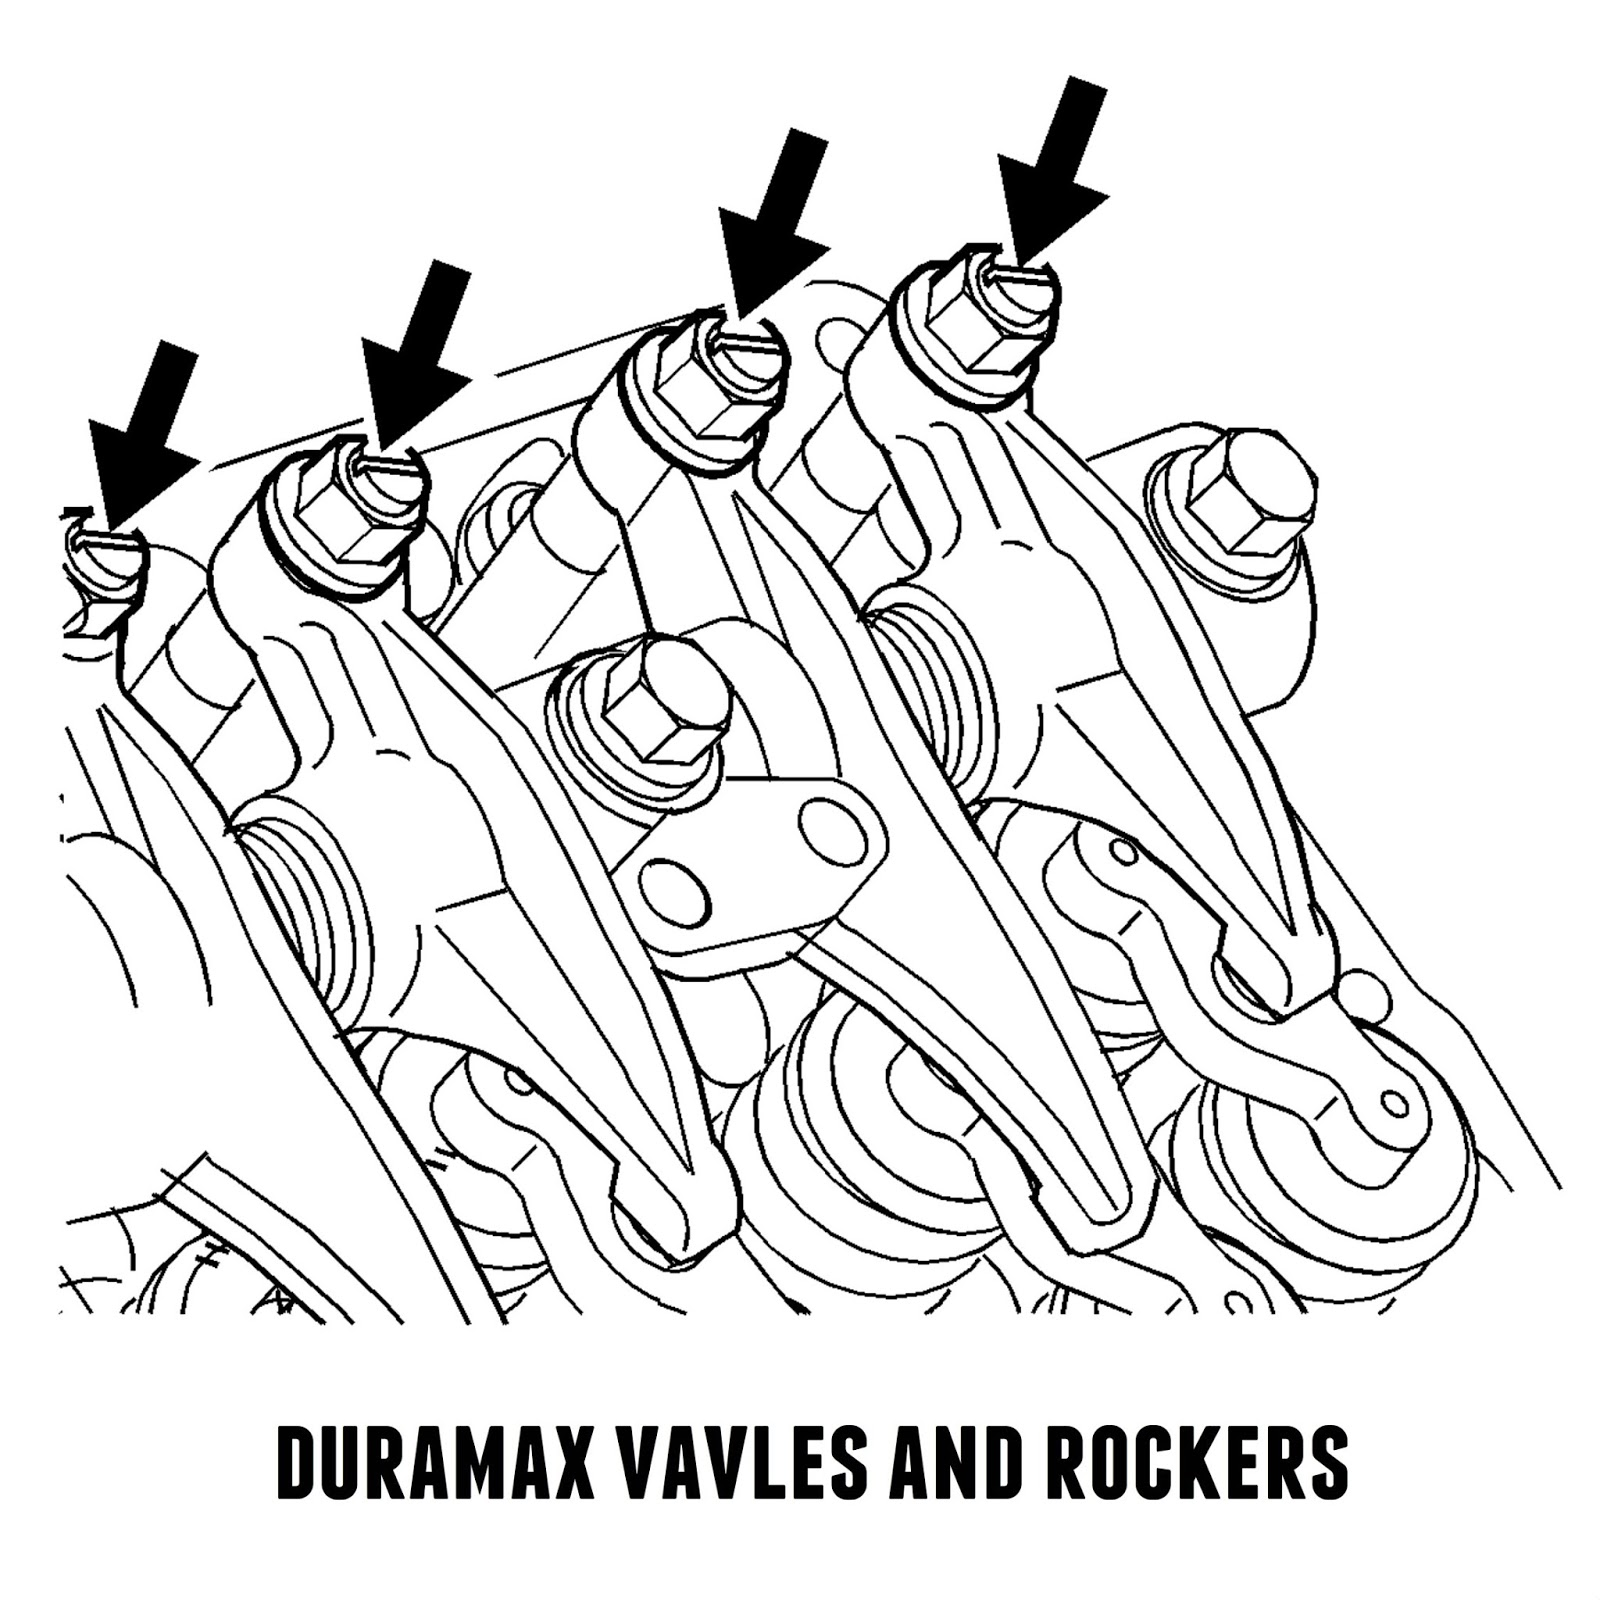 toxic diesel performance duramax 6 6l valve lash adjustment Duramax Fuel Leaks to adjust the valves start by loosening all the jam nuts with a 14mm wrench you will also need a flat screwdriver to make the adjustments